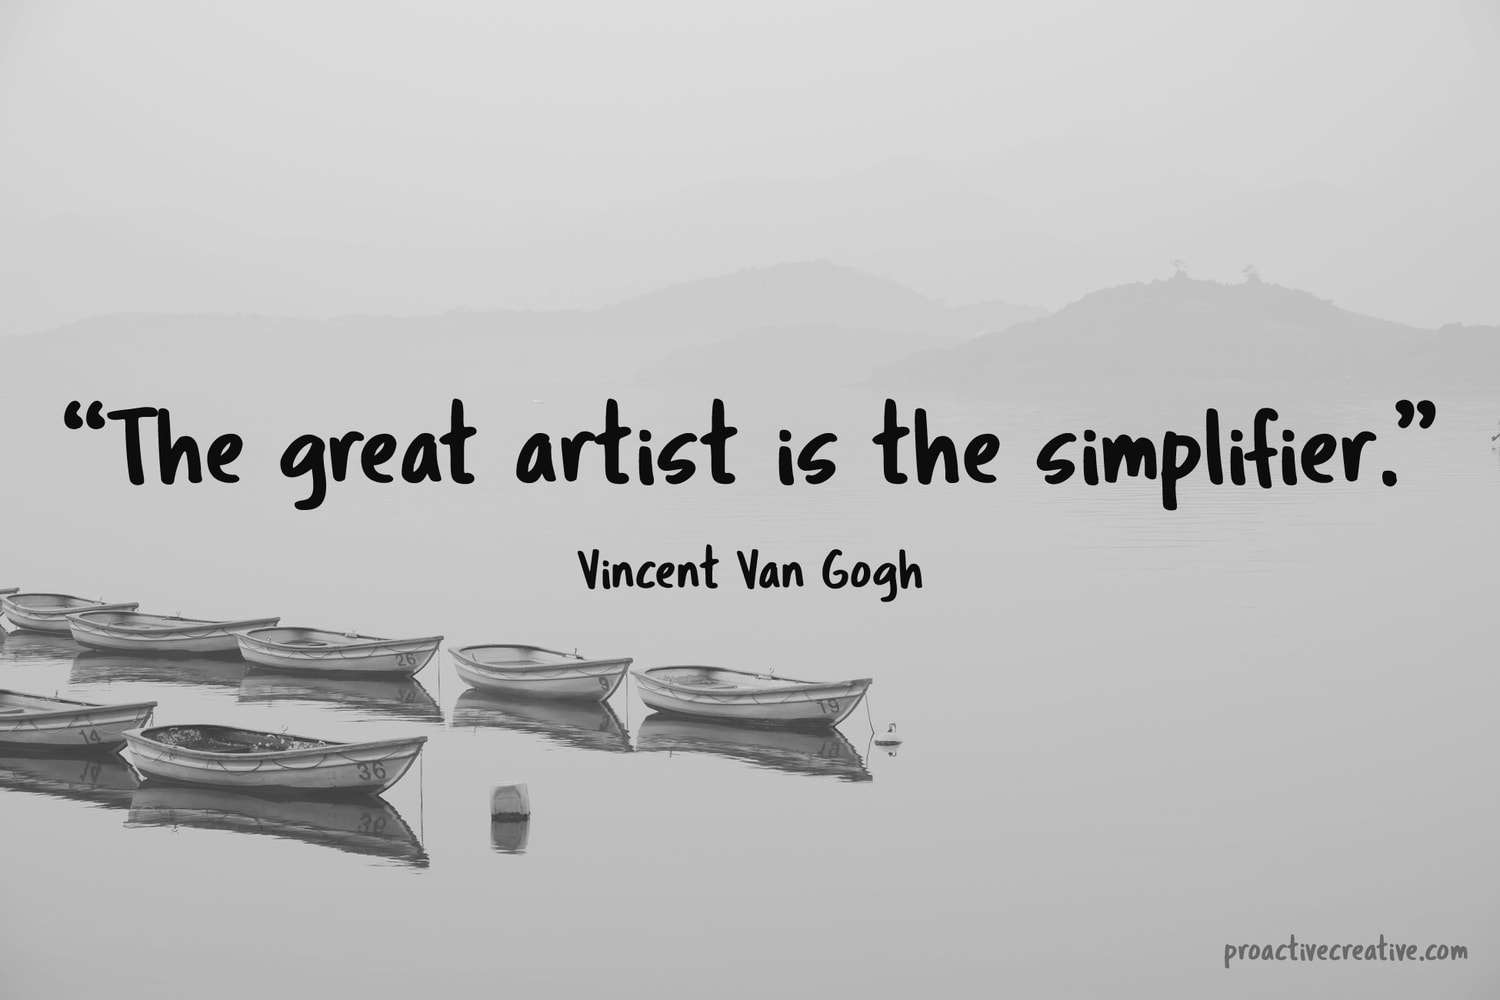 art quotes - Vincent Van Gogh